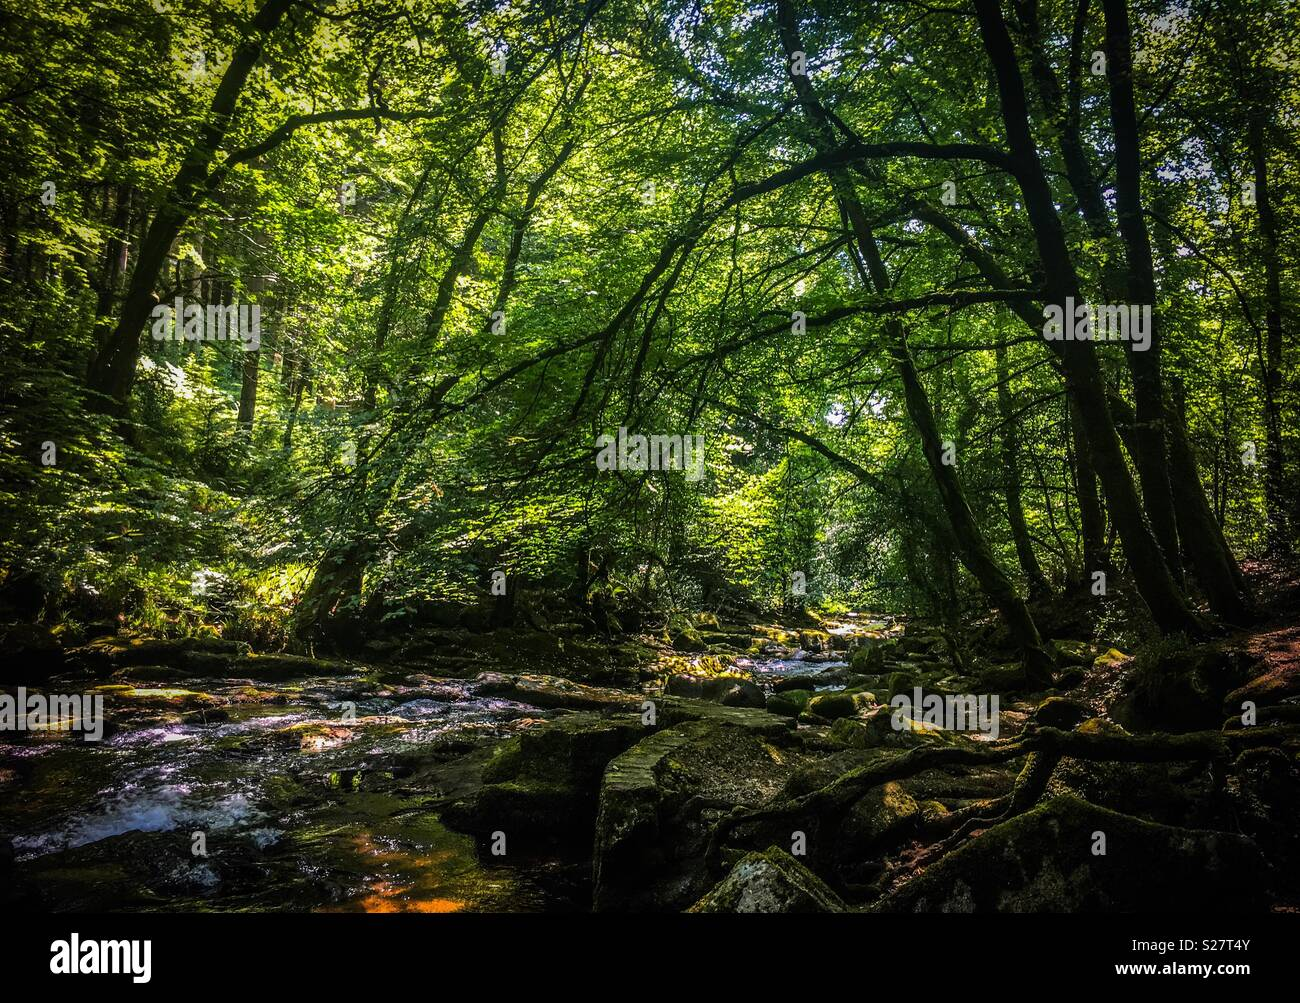 A cool place to walk during the heat of mid summer next to the River Erme, Ivybridge, Devon UK. - Stock Image